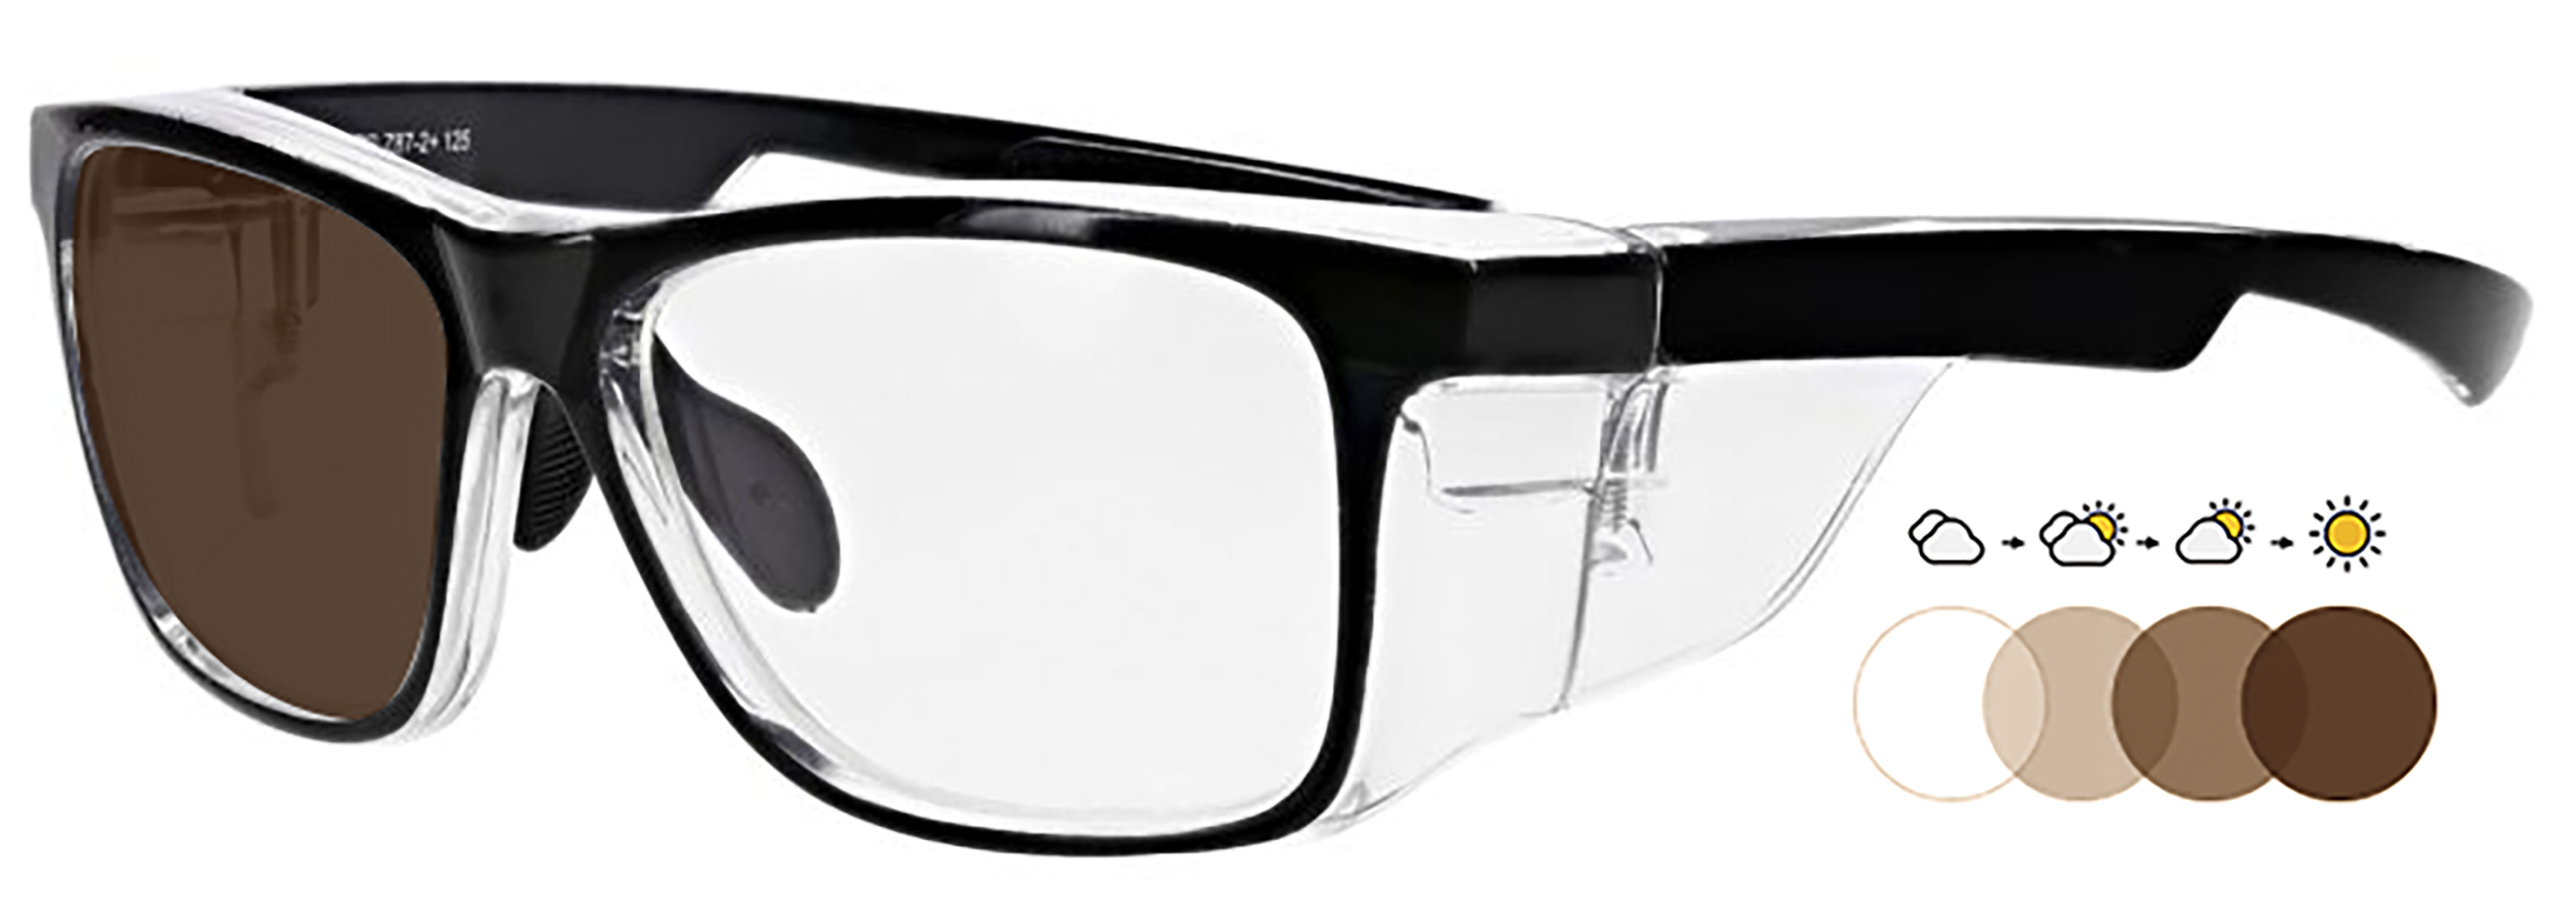 15011 transition brown lens option - RX Safety